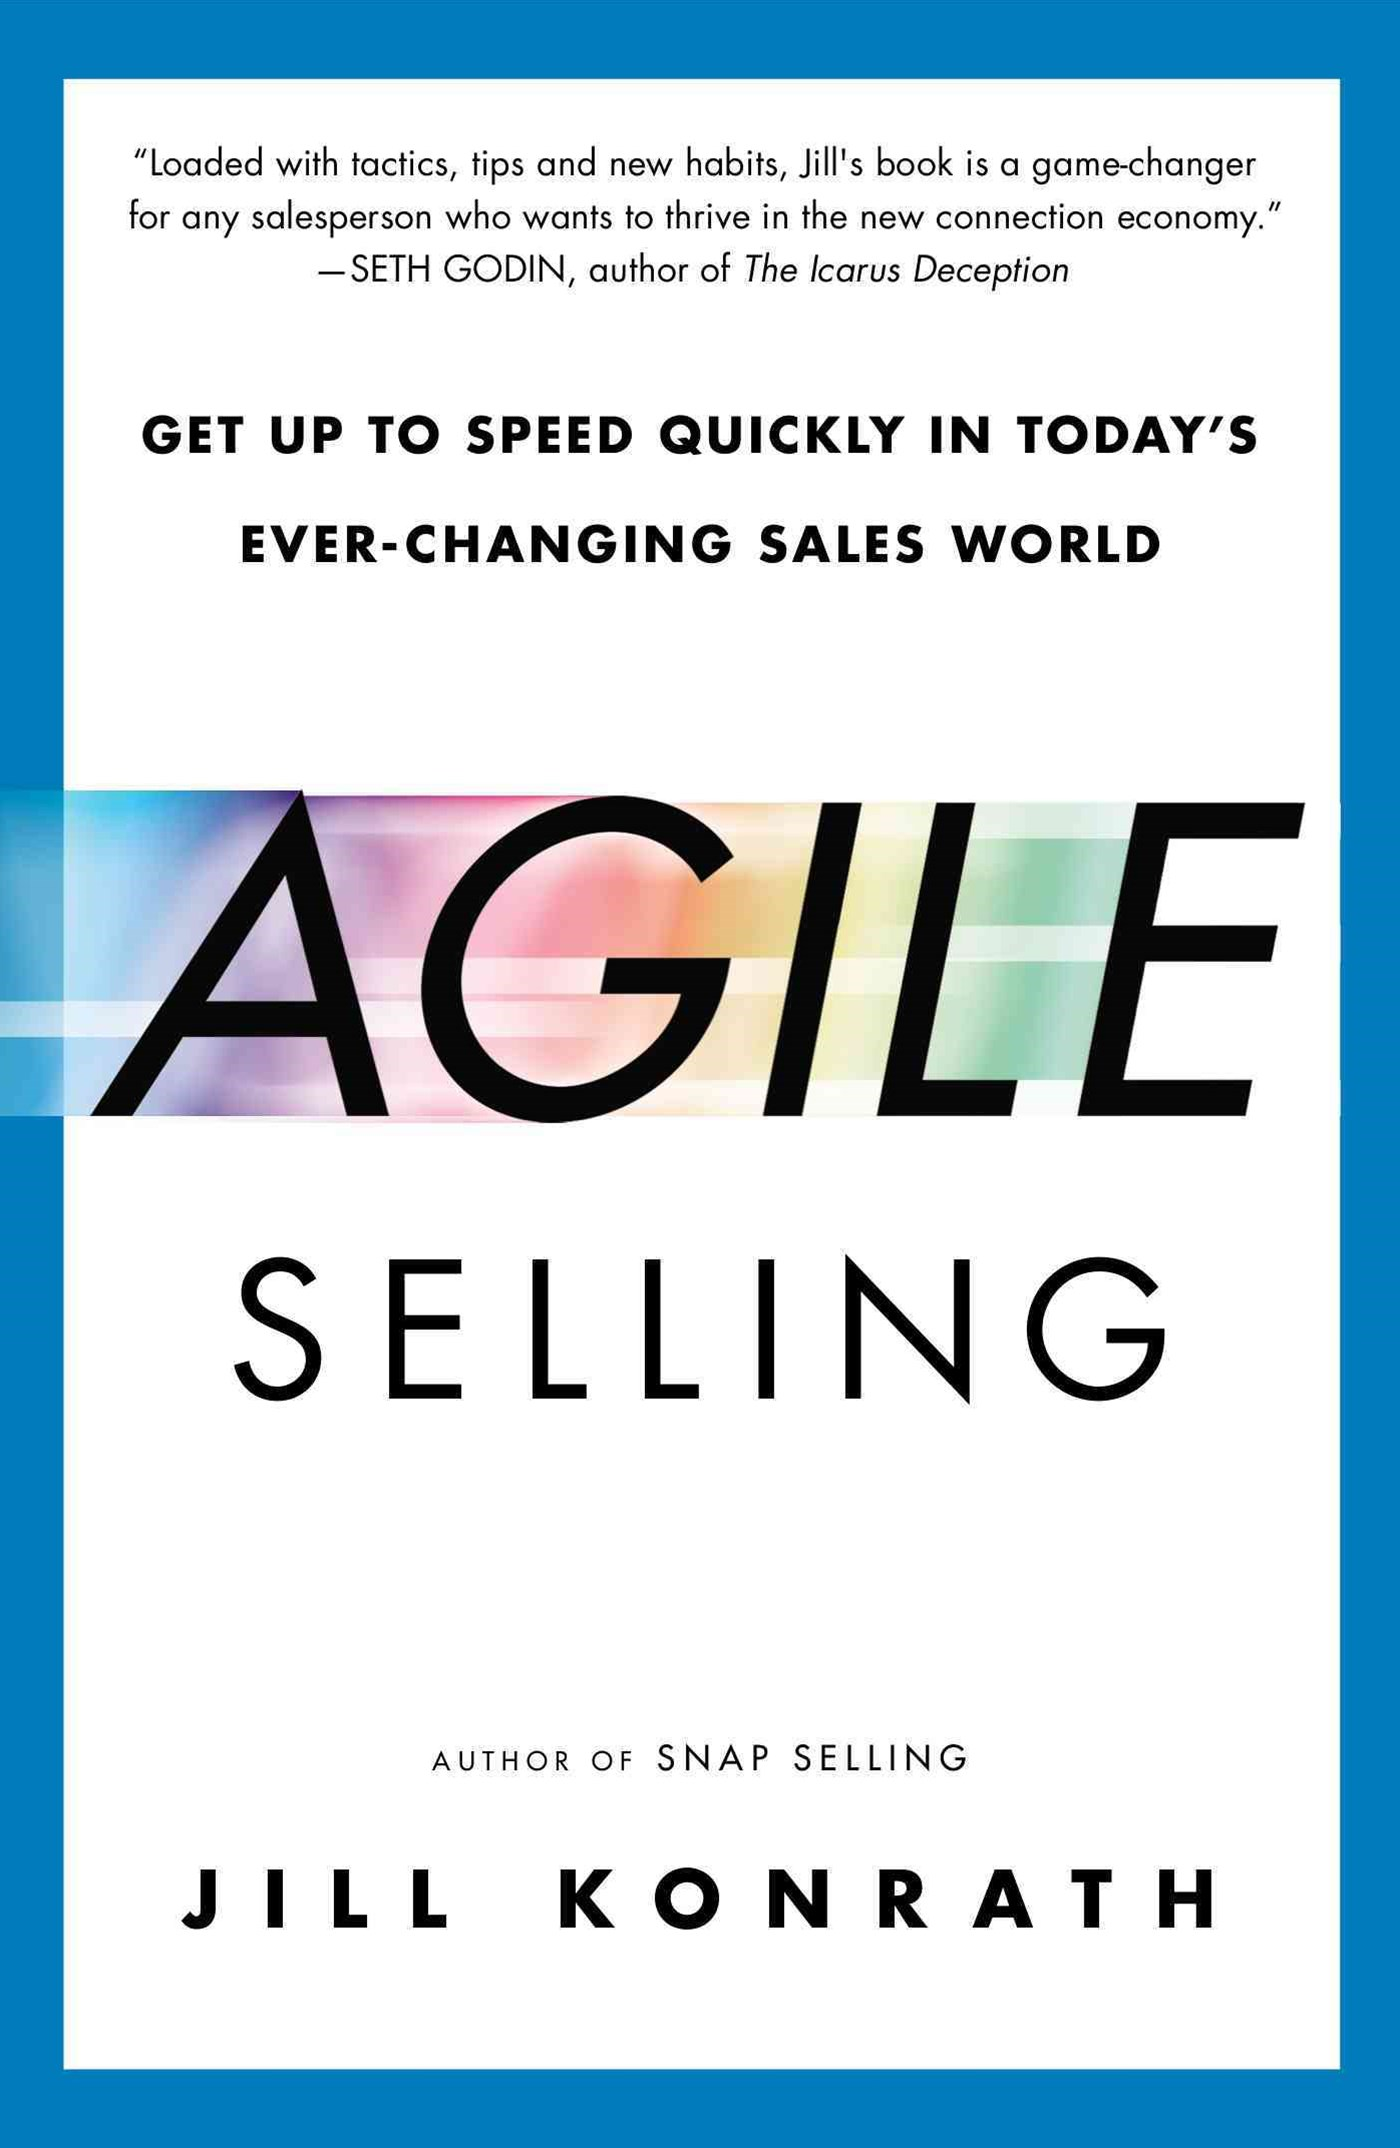 Agile Sellingging Sales World